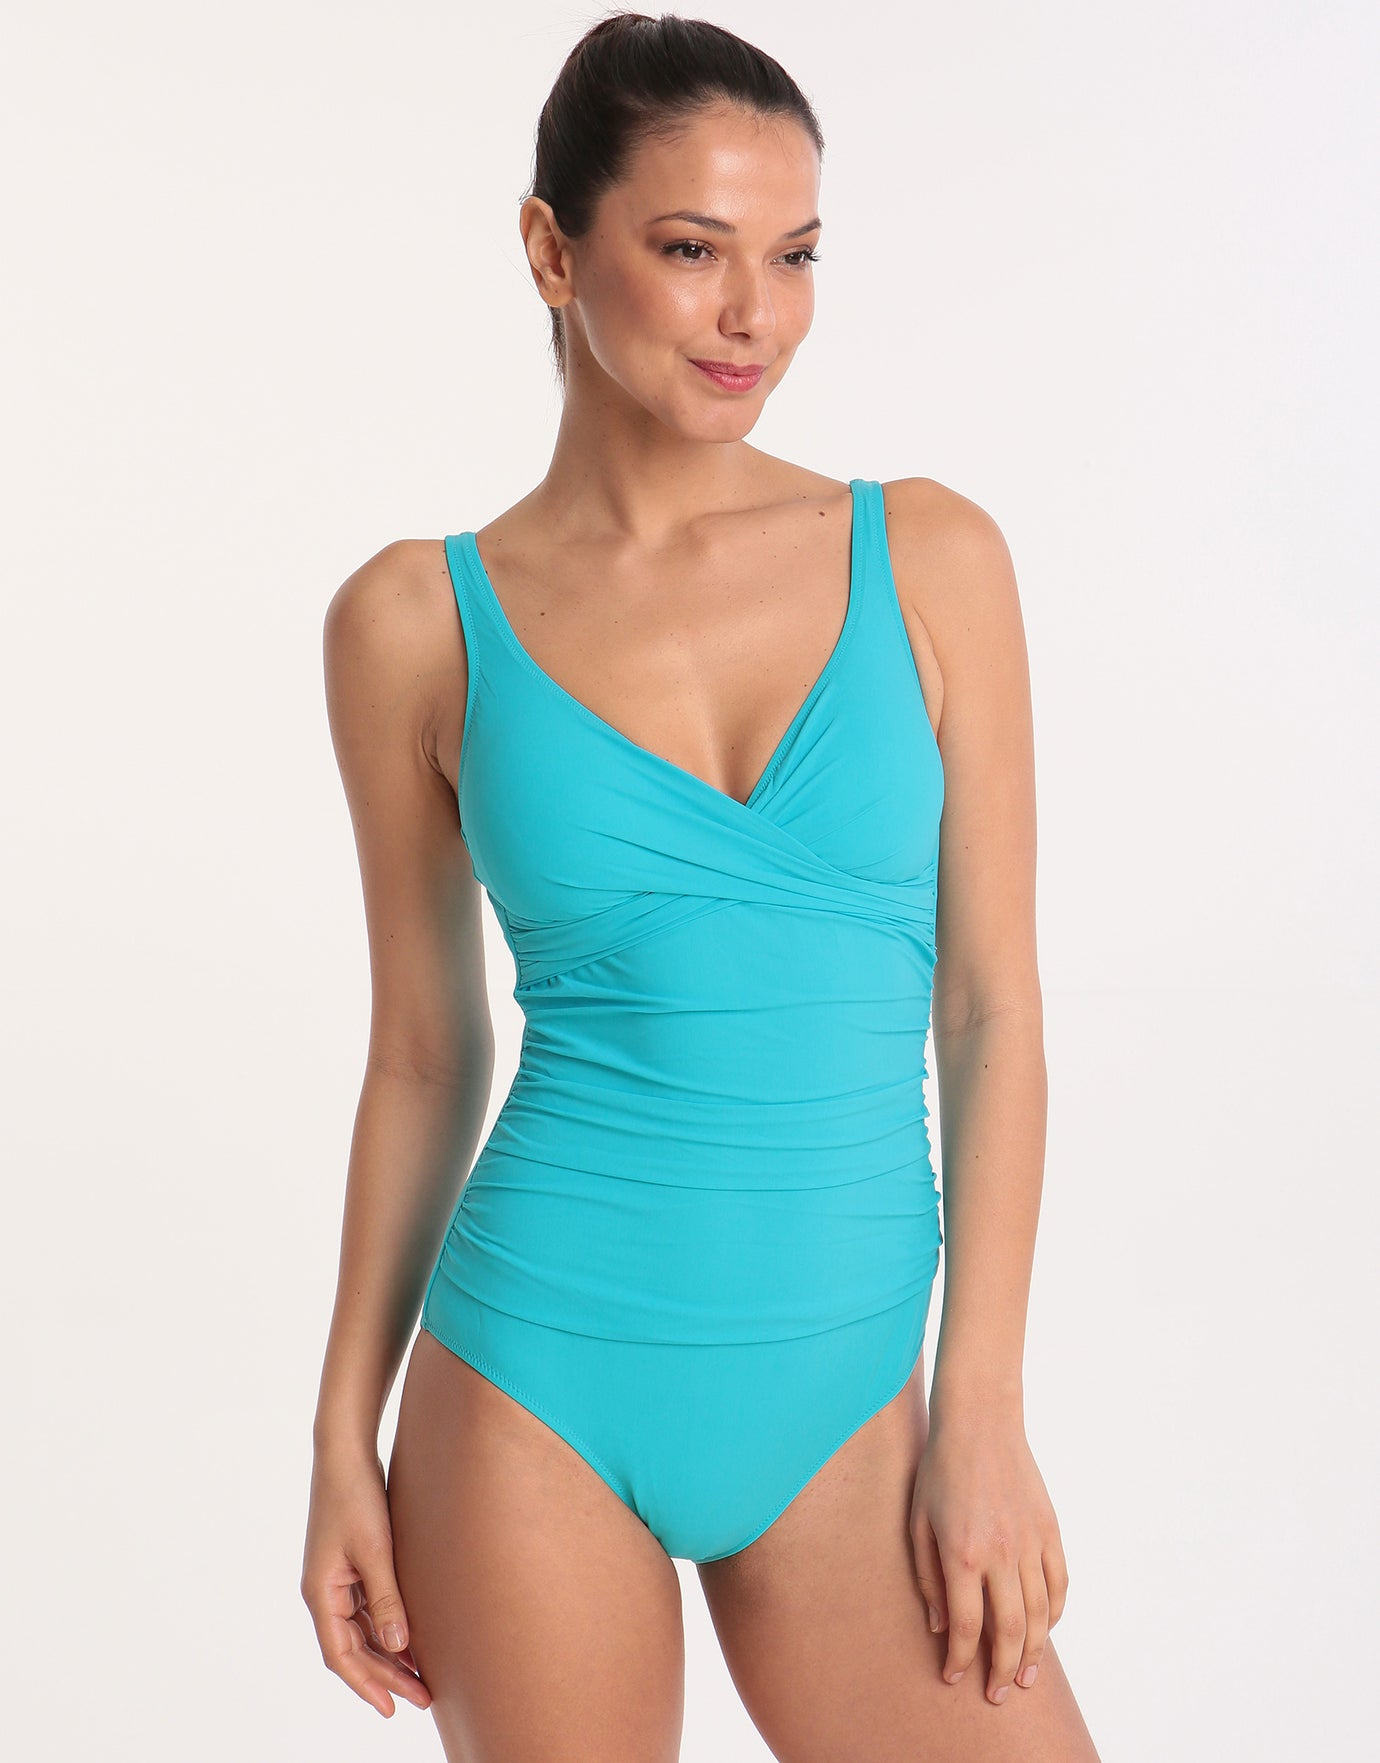 270ddf80fc Gottex Profile Tutti Frutti Crossover Swimsuit - Aqua | Simply Beach UK